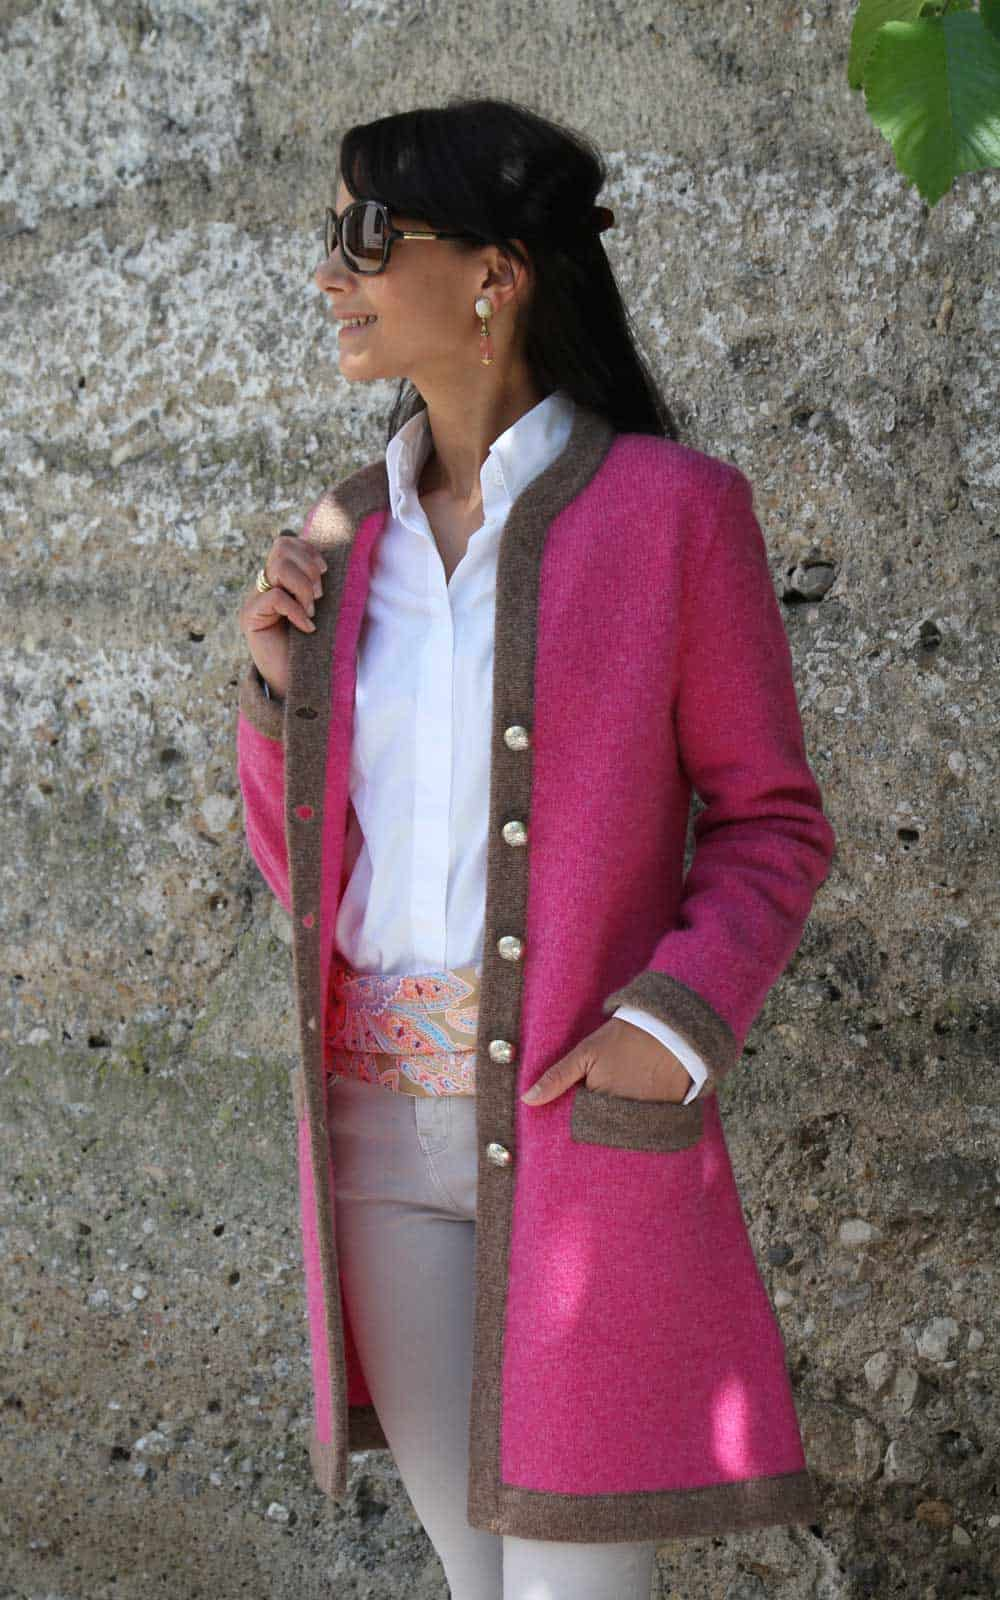 Jacket: L326 Color: 290/3098 [LÖN]